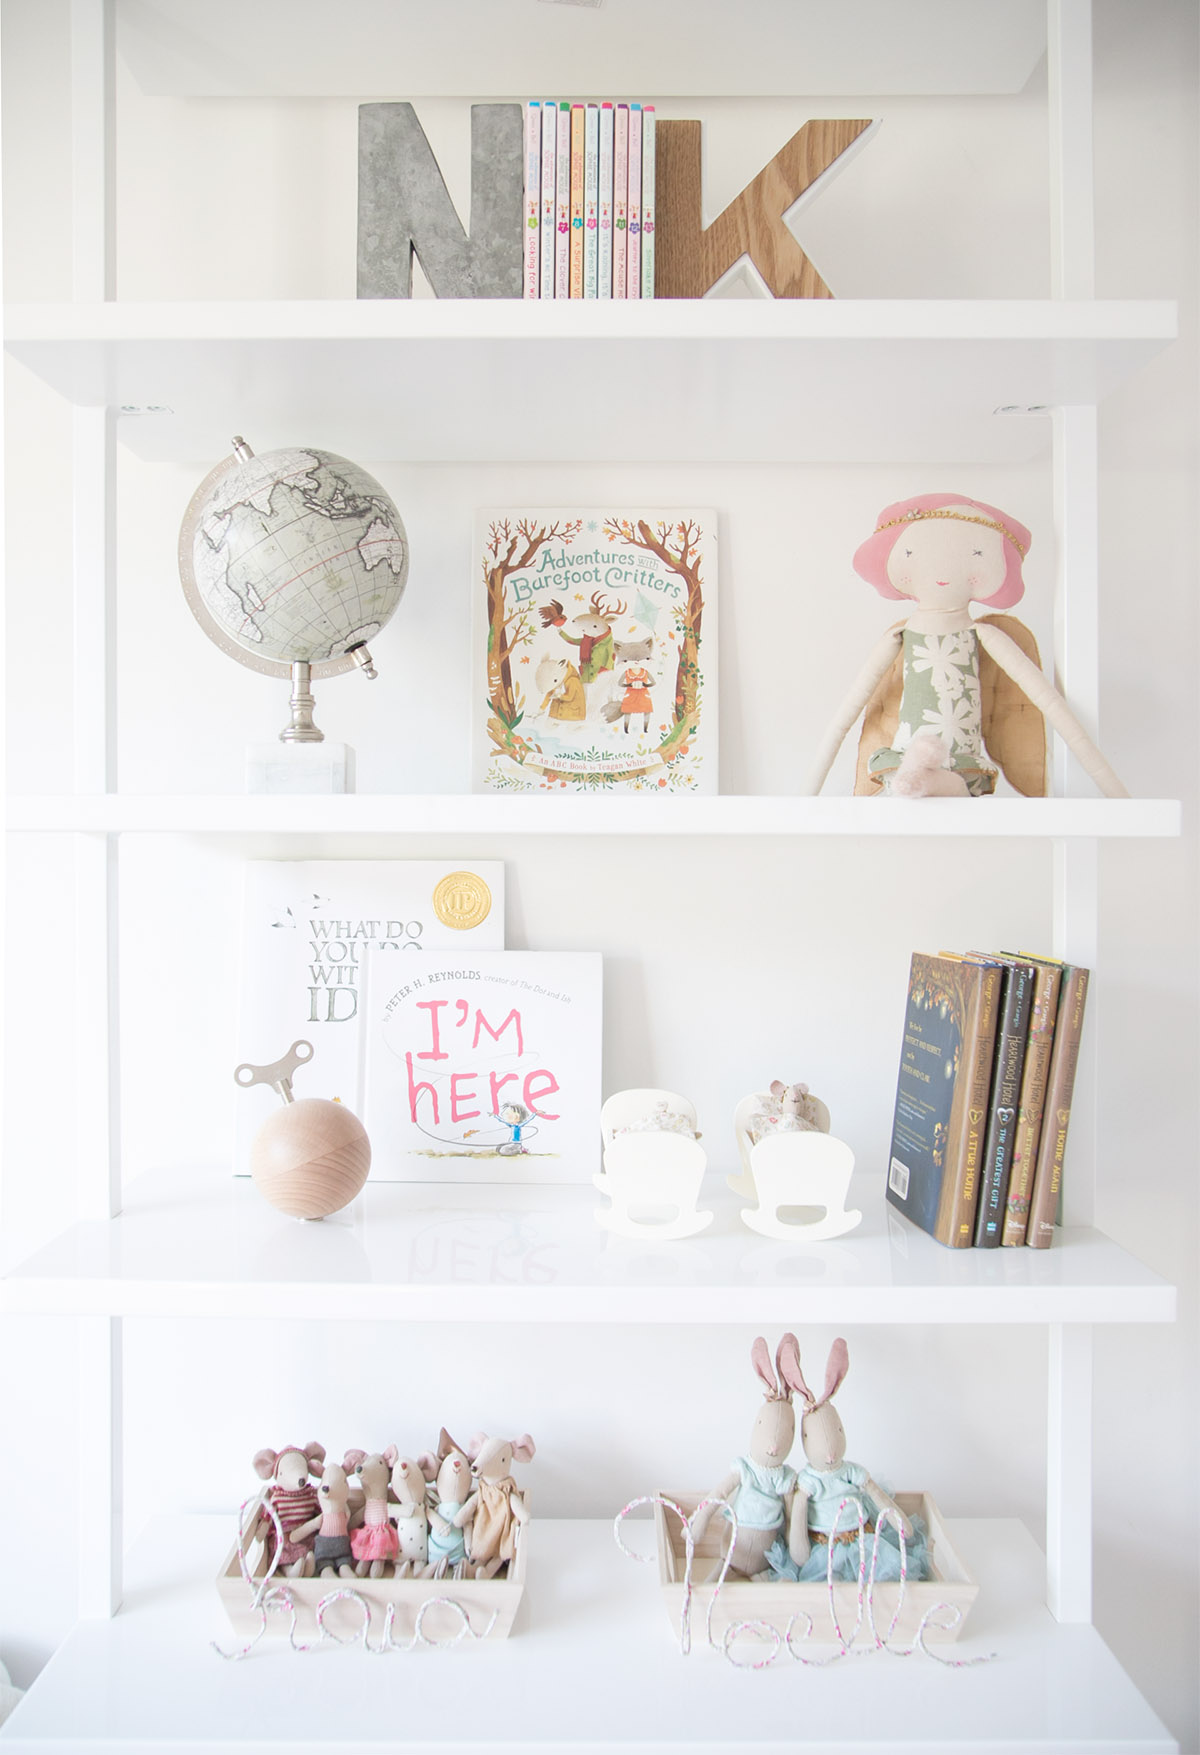 How To Style Your Kids' Shelves In 4 Easy Steps! — Winter Daisy